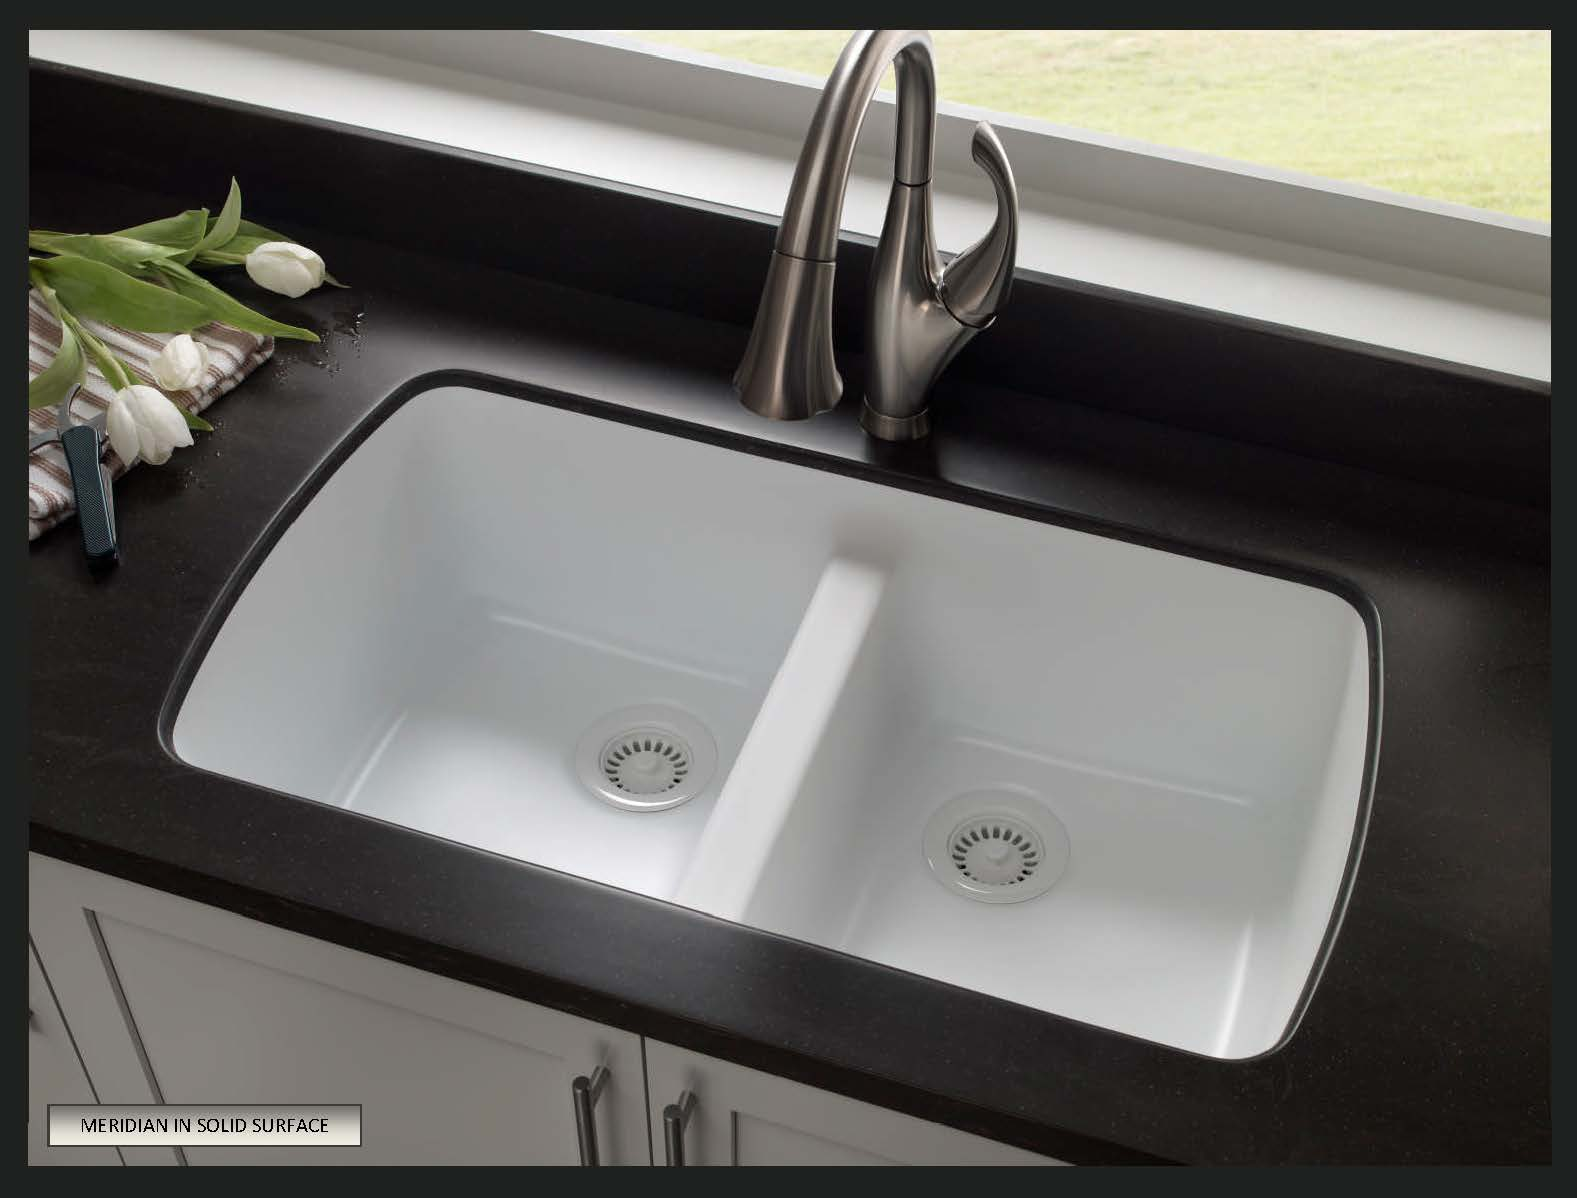 How To Clean Corian Sinks And Countertops Corian Sinks Cleaning Great Large Size Of Cost Of Corian